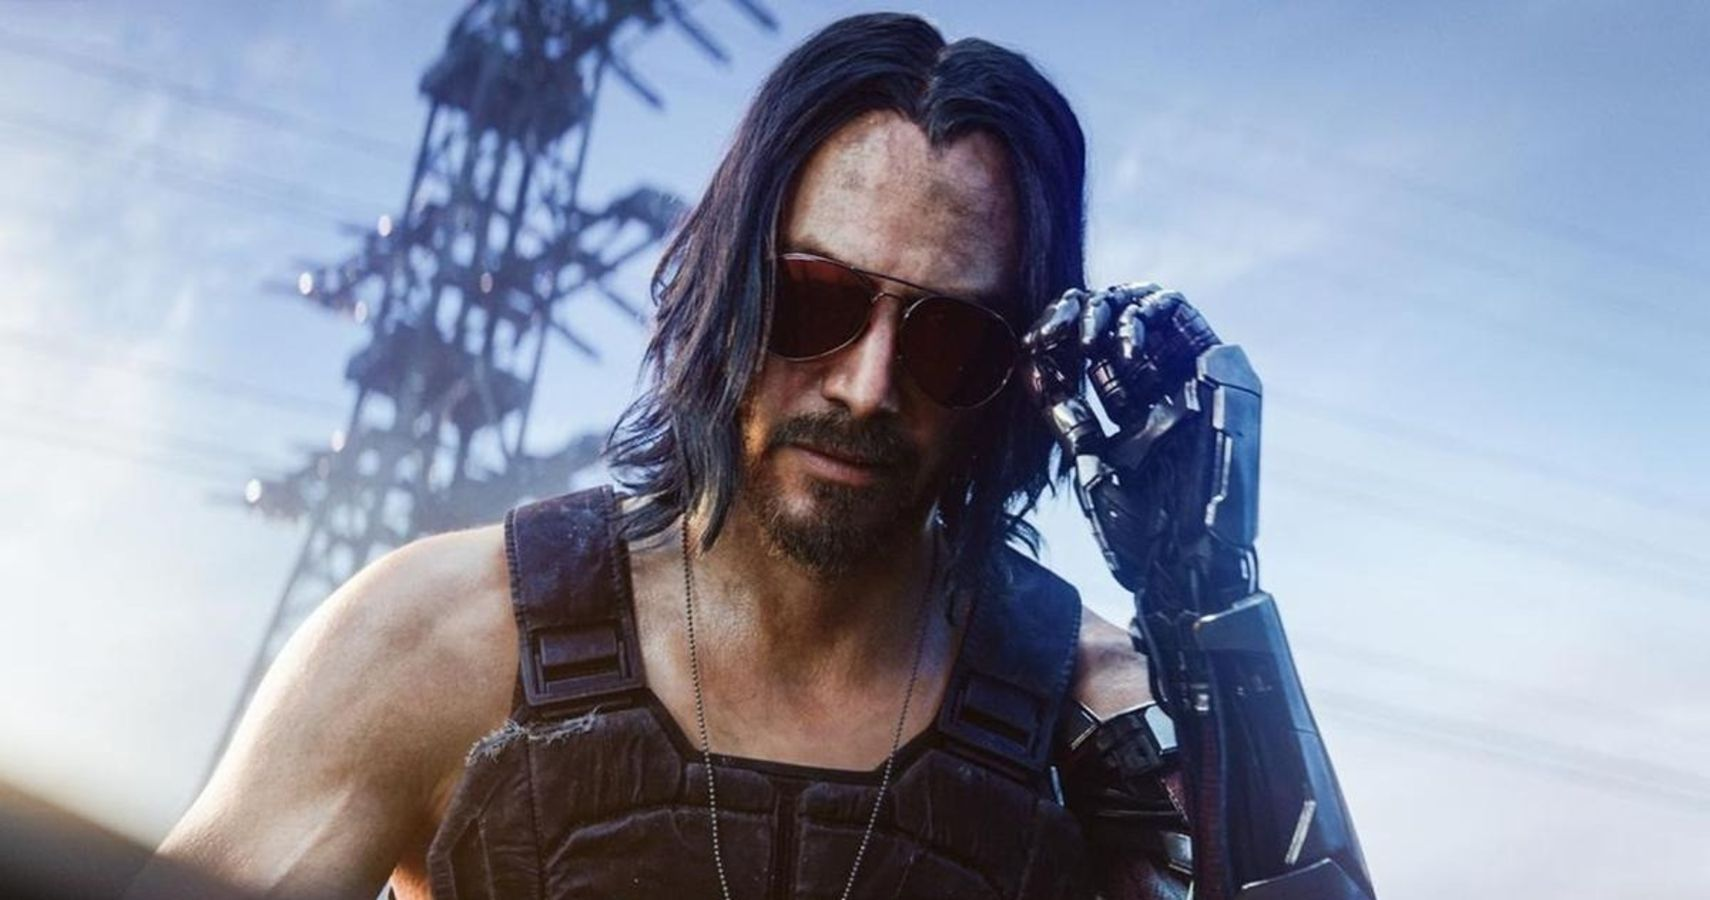 Someone Created Cyberpunk 2077's Johnny Silverhand In Fallout 4